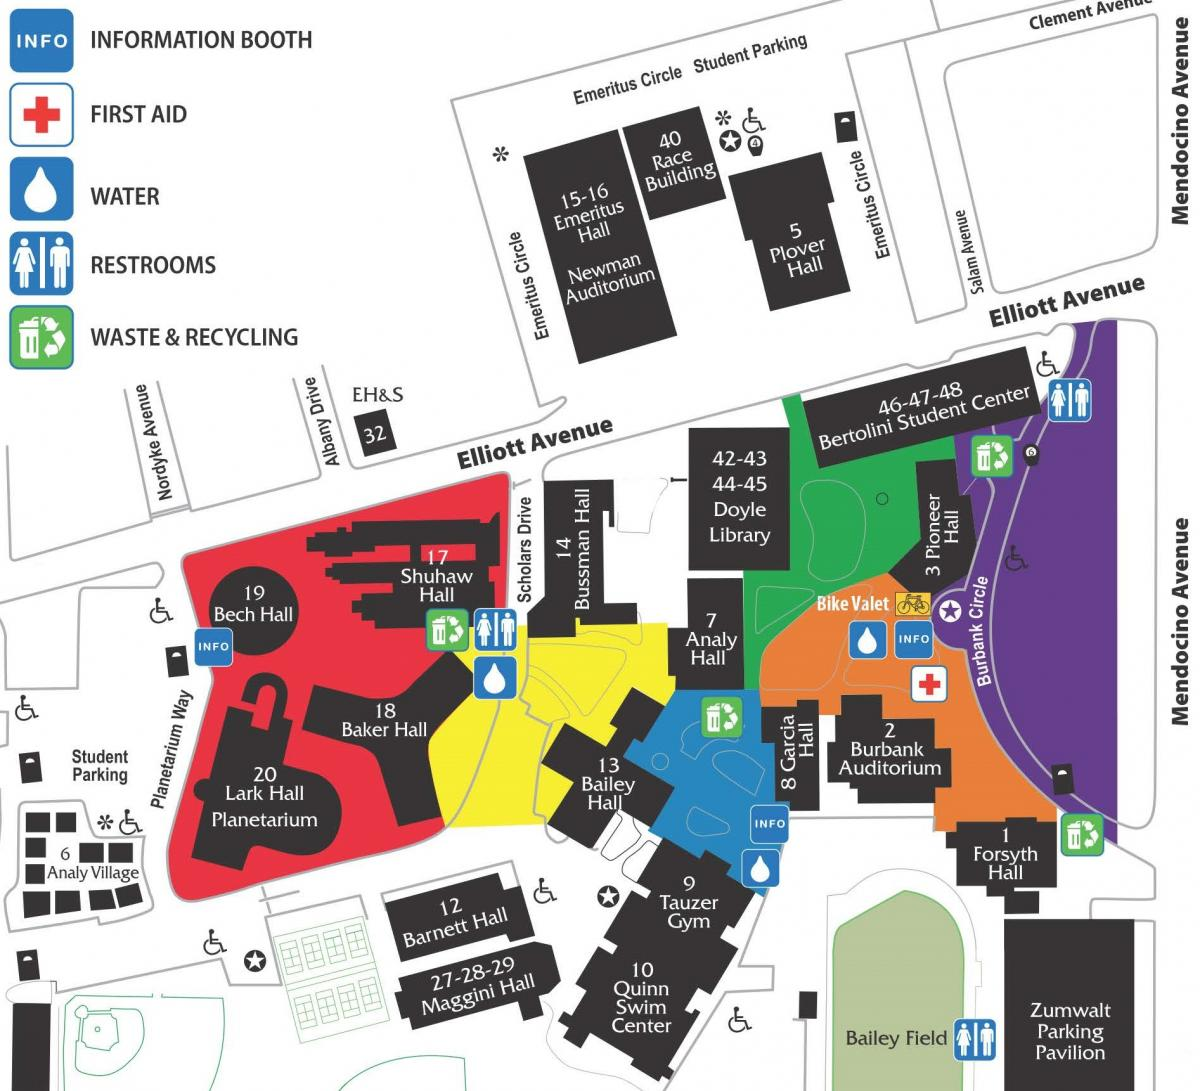 SRJC Campus Map with Event Areas